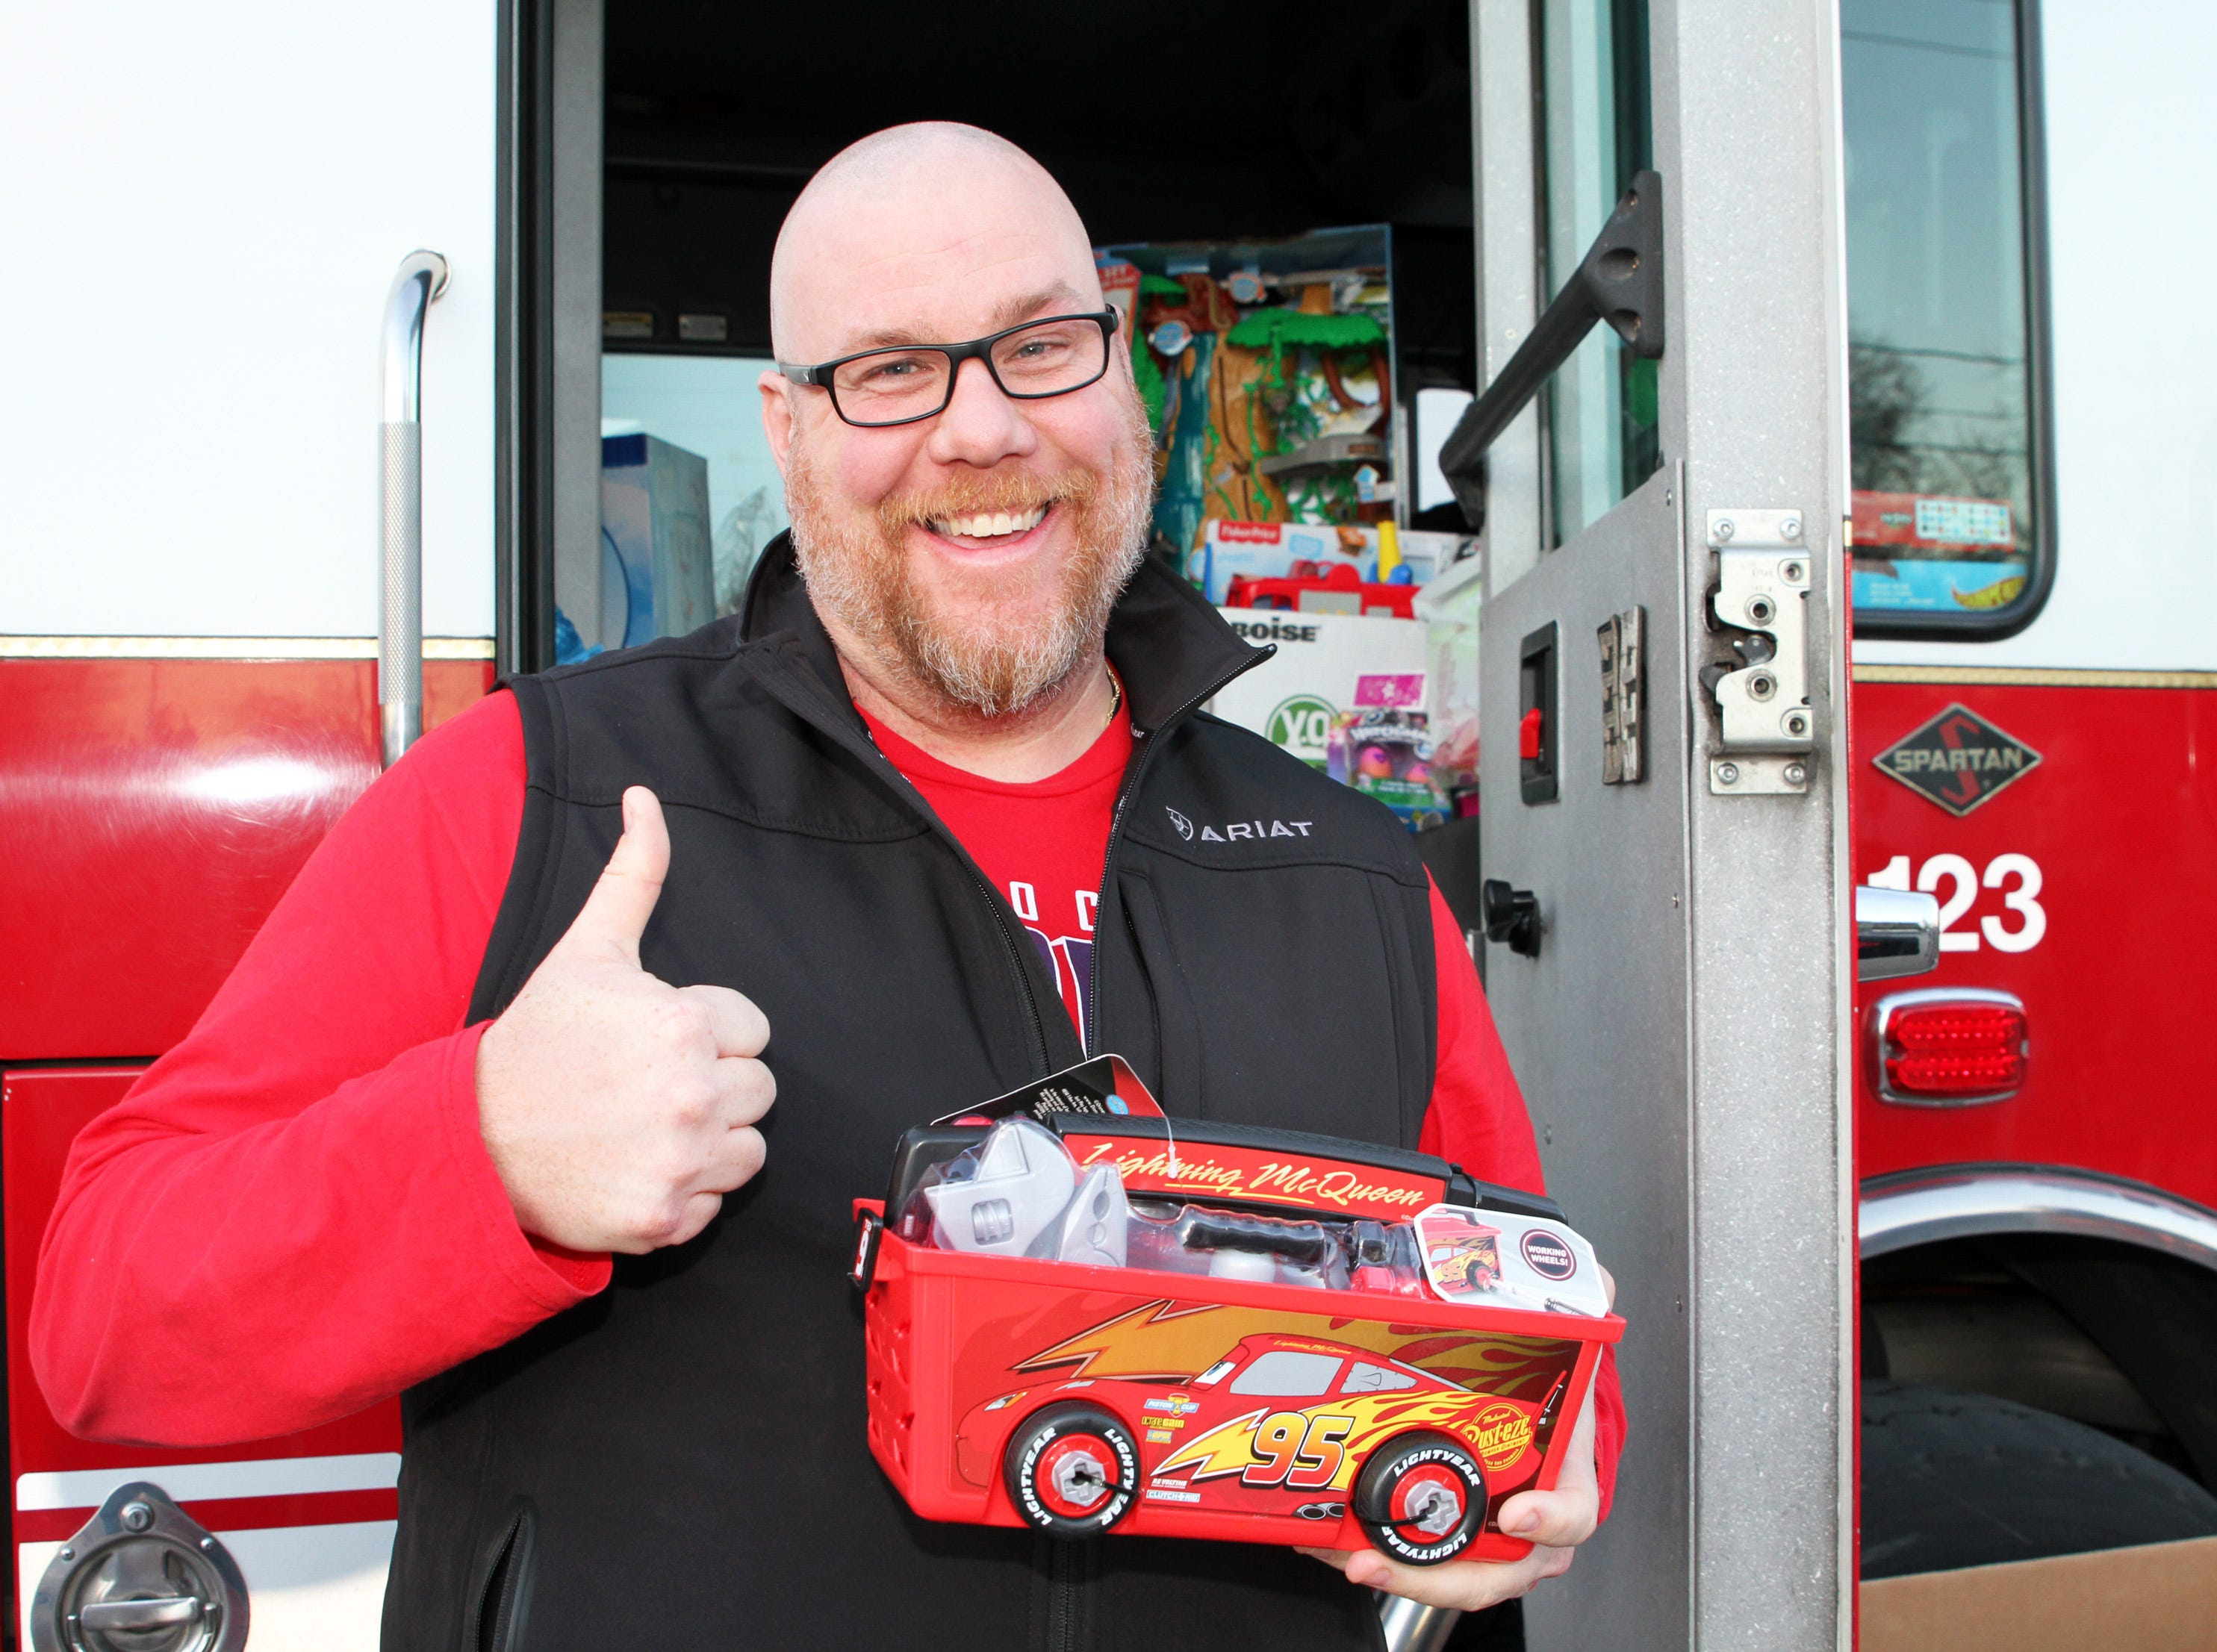 Travis Gavin, 39, of Ankeny donates a present as gifts are dropped off at Ankeny's fill the truck day during the U.S. Marine Corps Toys for Tots campaign at the Ankeny Fire Station Headquarters on Sunday, Dec. 16, 2018.